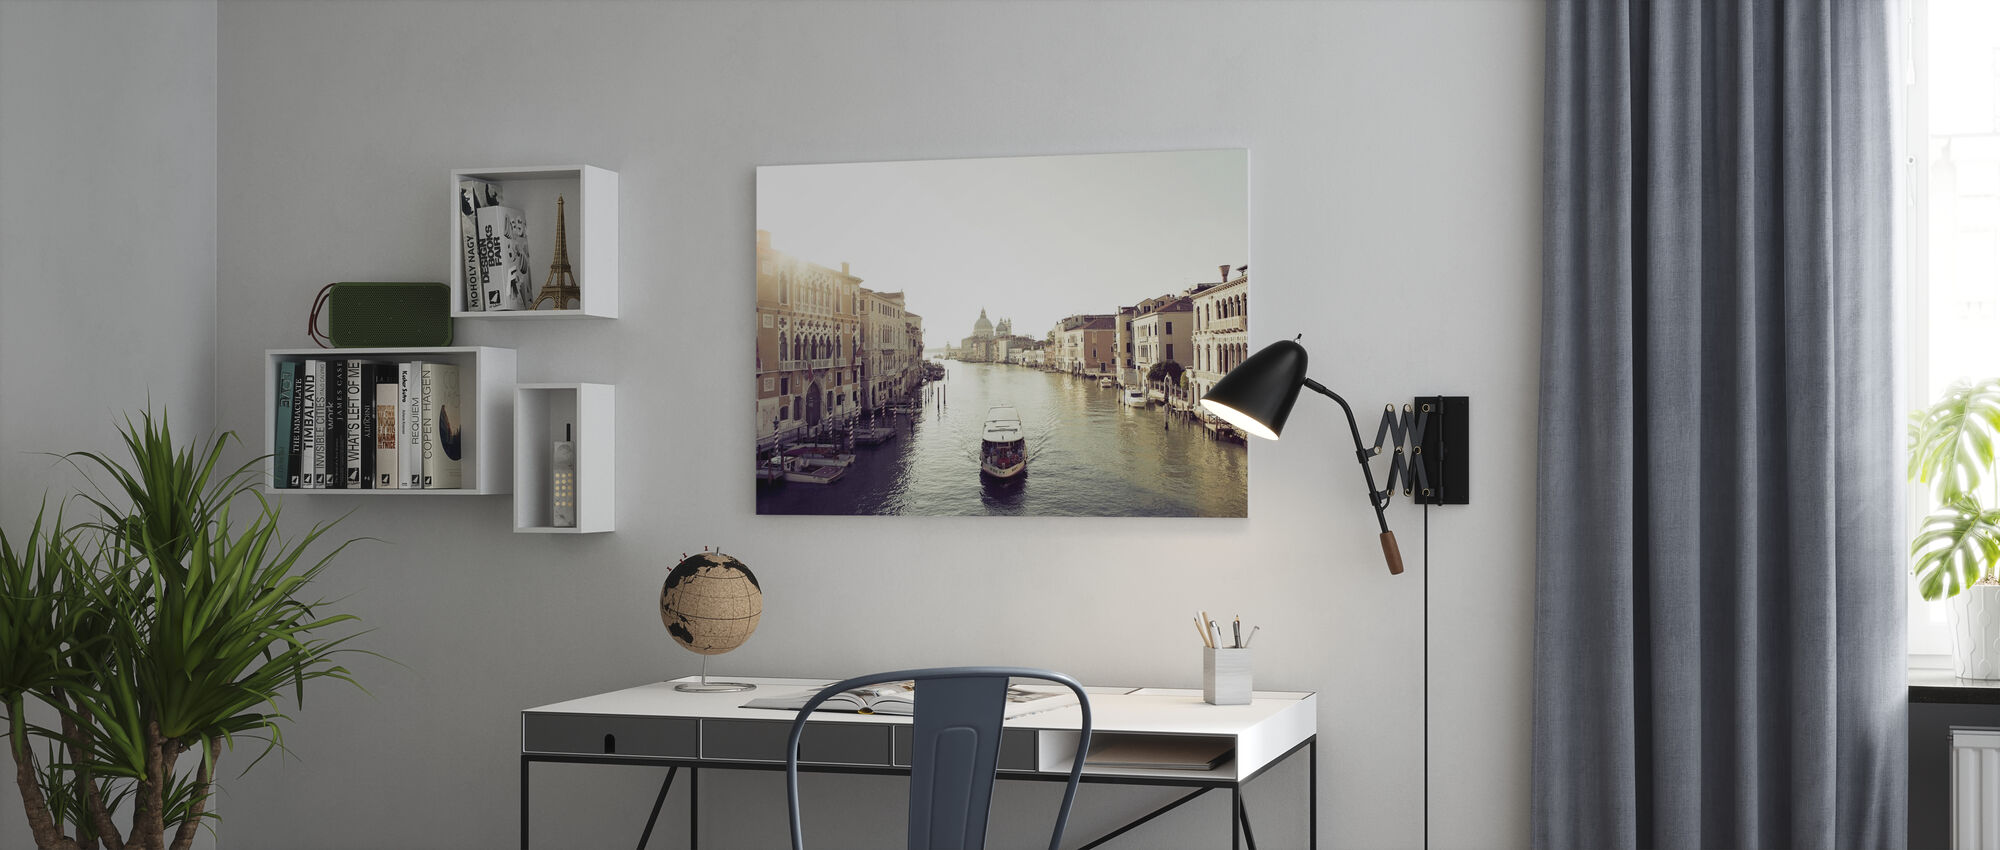 Taxi Boat on Grand Canal - Canvas print - Office